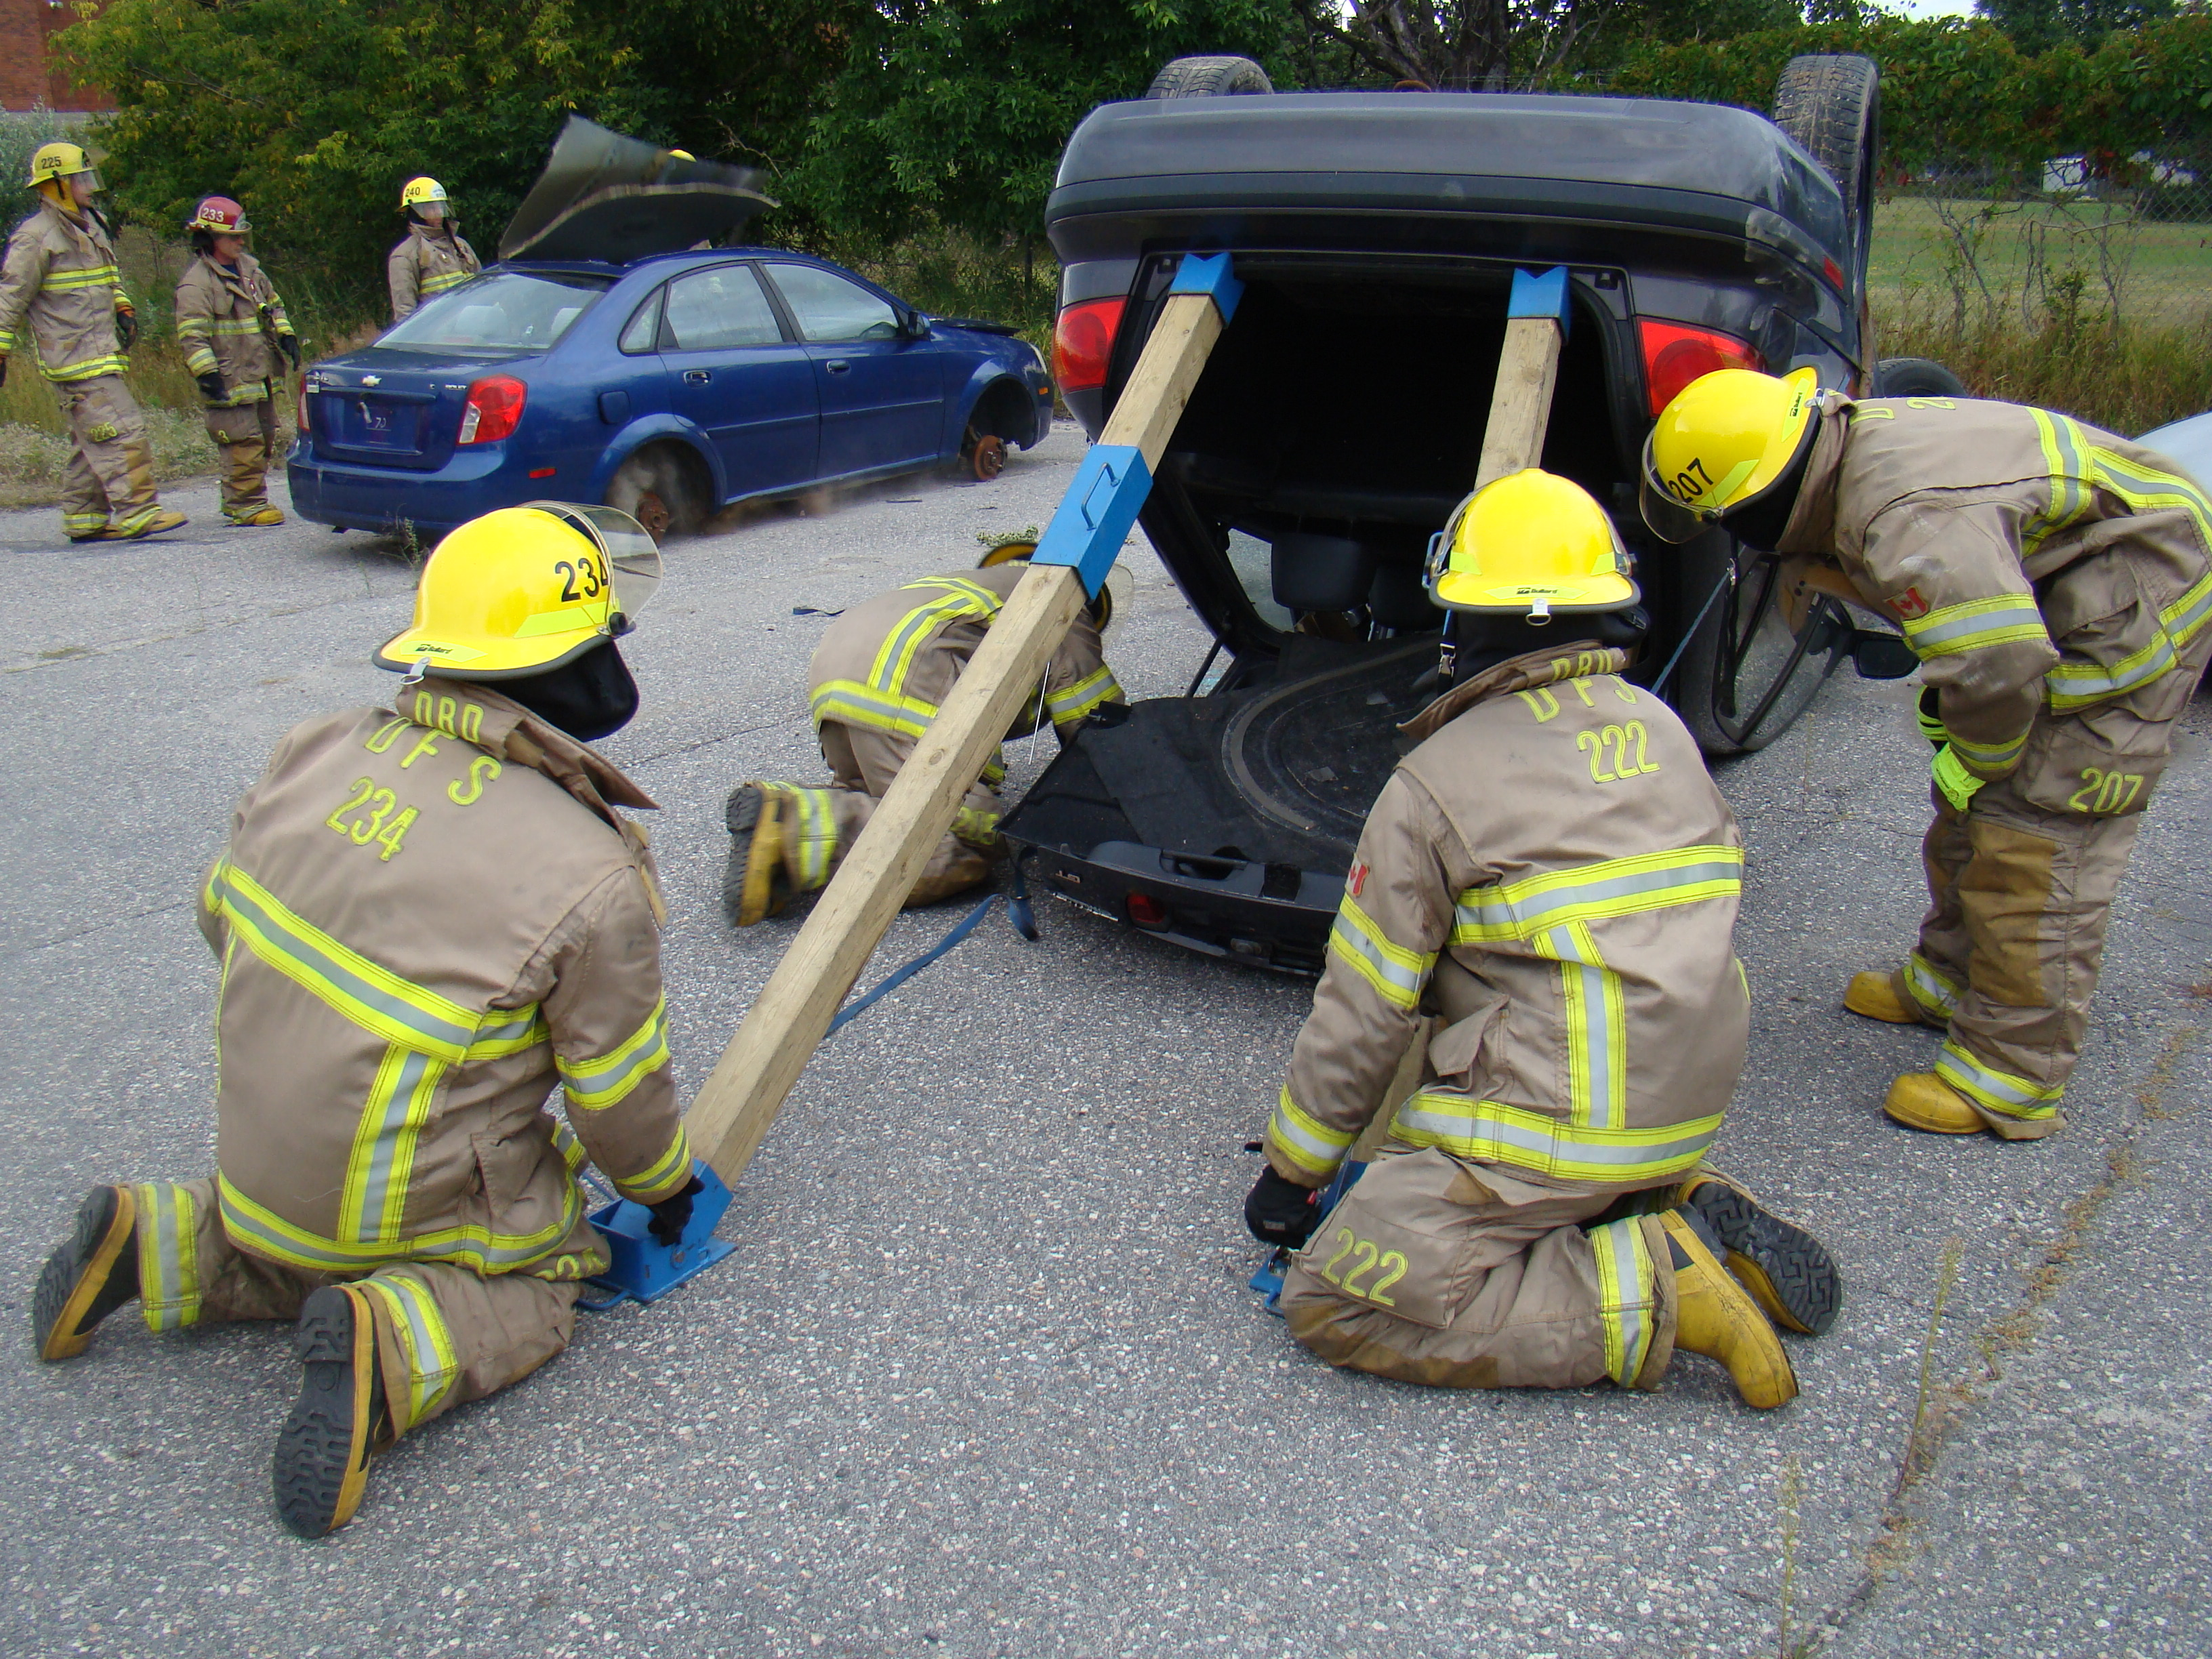 Photo of firefighters bracing an overturned vehicle as part of vehicle extrication training